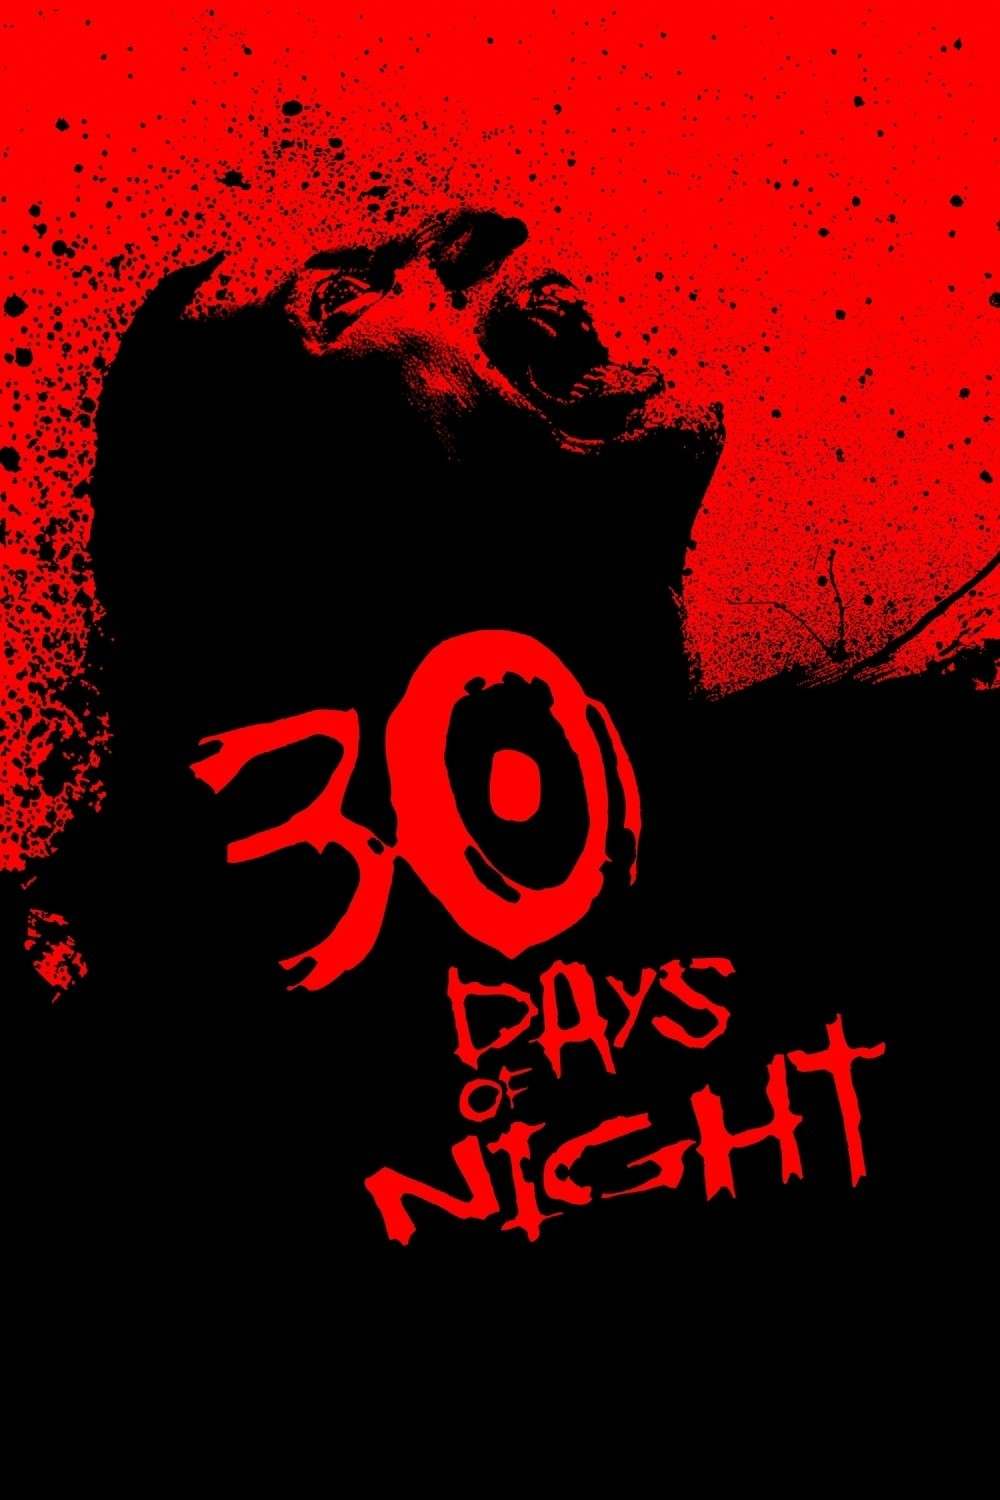 This is a poster for the film 30 Days of Night.